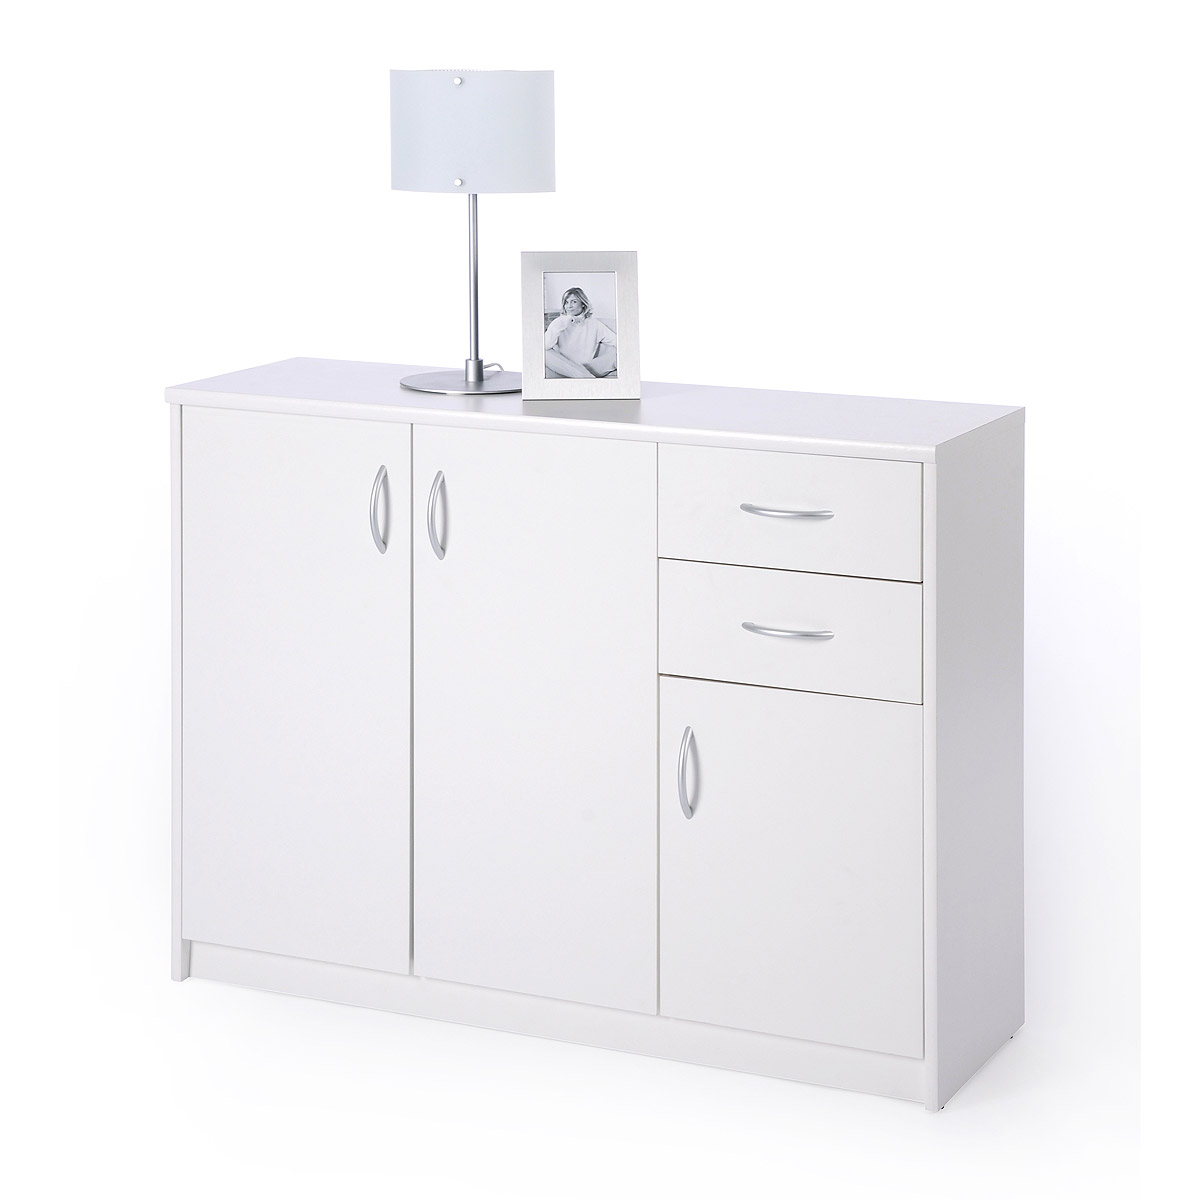 sideboard kiel 2 anrichte kommode wei mit 3 t ren und 2 schubk sten ebay. Black Bedroom Furniture Sets. Home Design Ideas